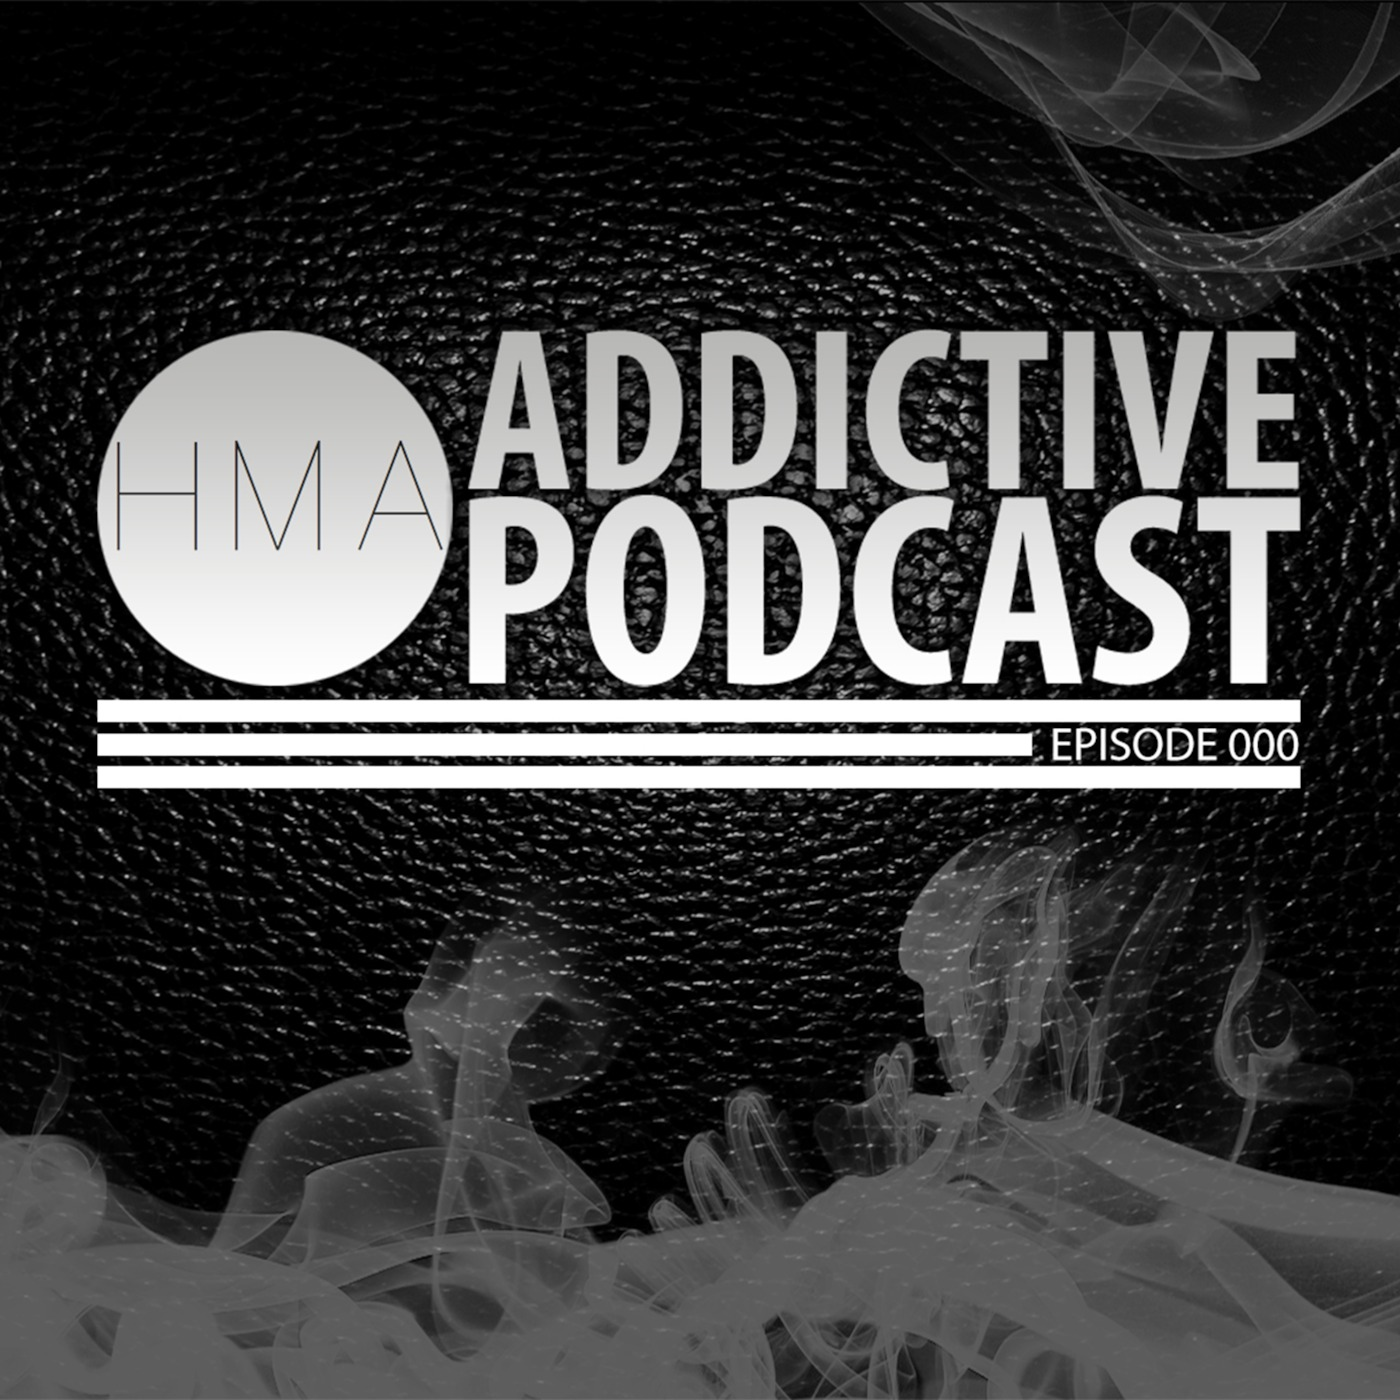 Addictive Podcast